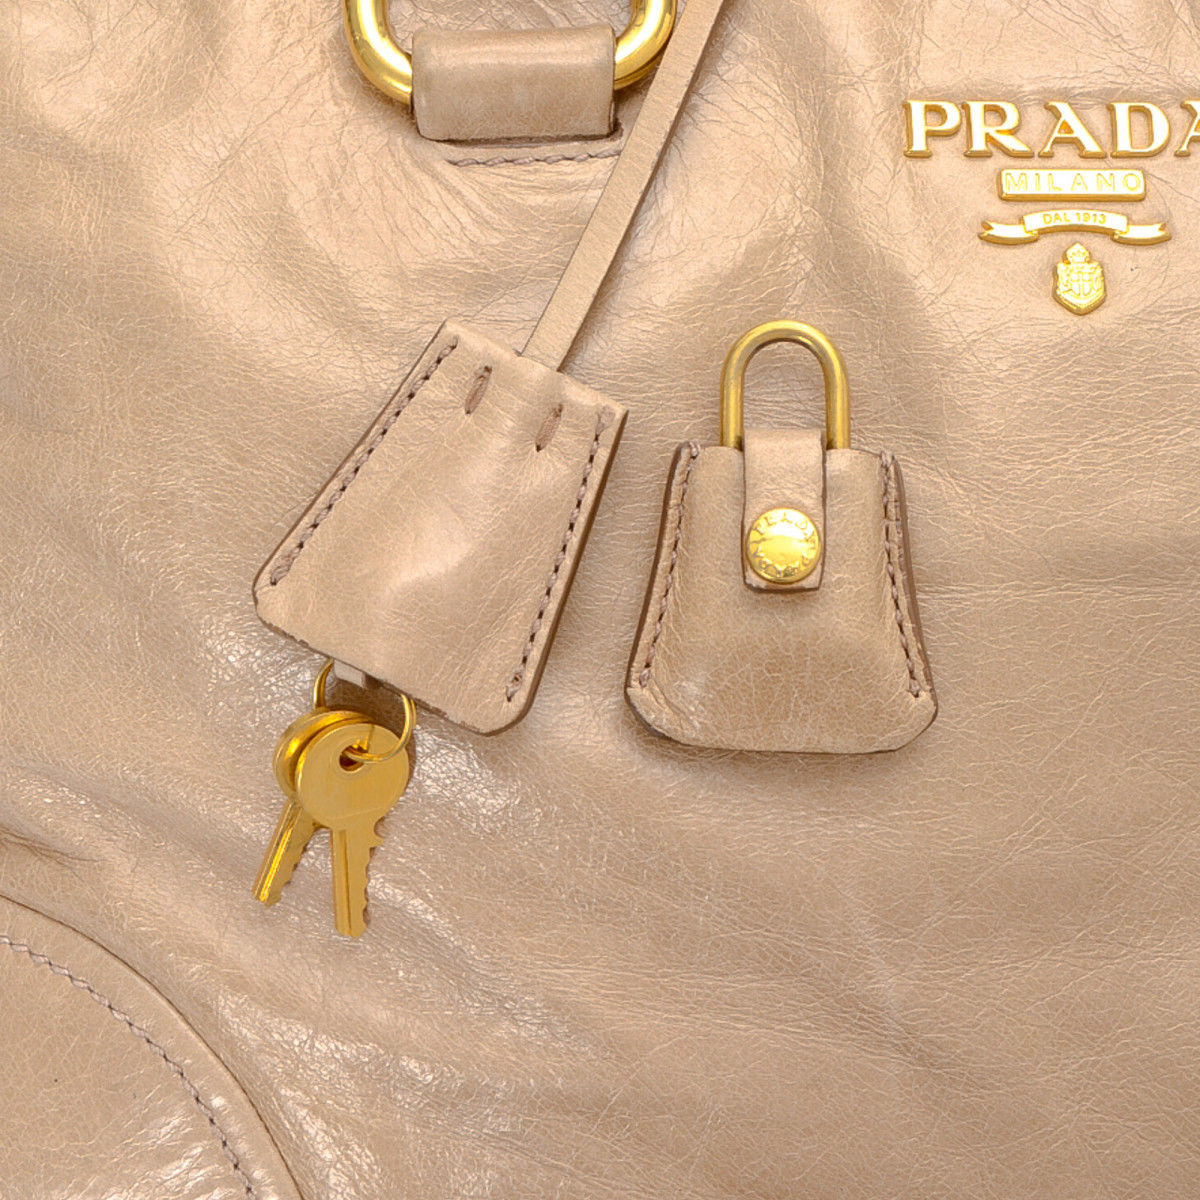 e9c1a129b63e Prada Two Way Handbag. Free Shipping. The authenticity of this vintage  Prada Two Way handbag is guaranteed by LXRandCo.